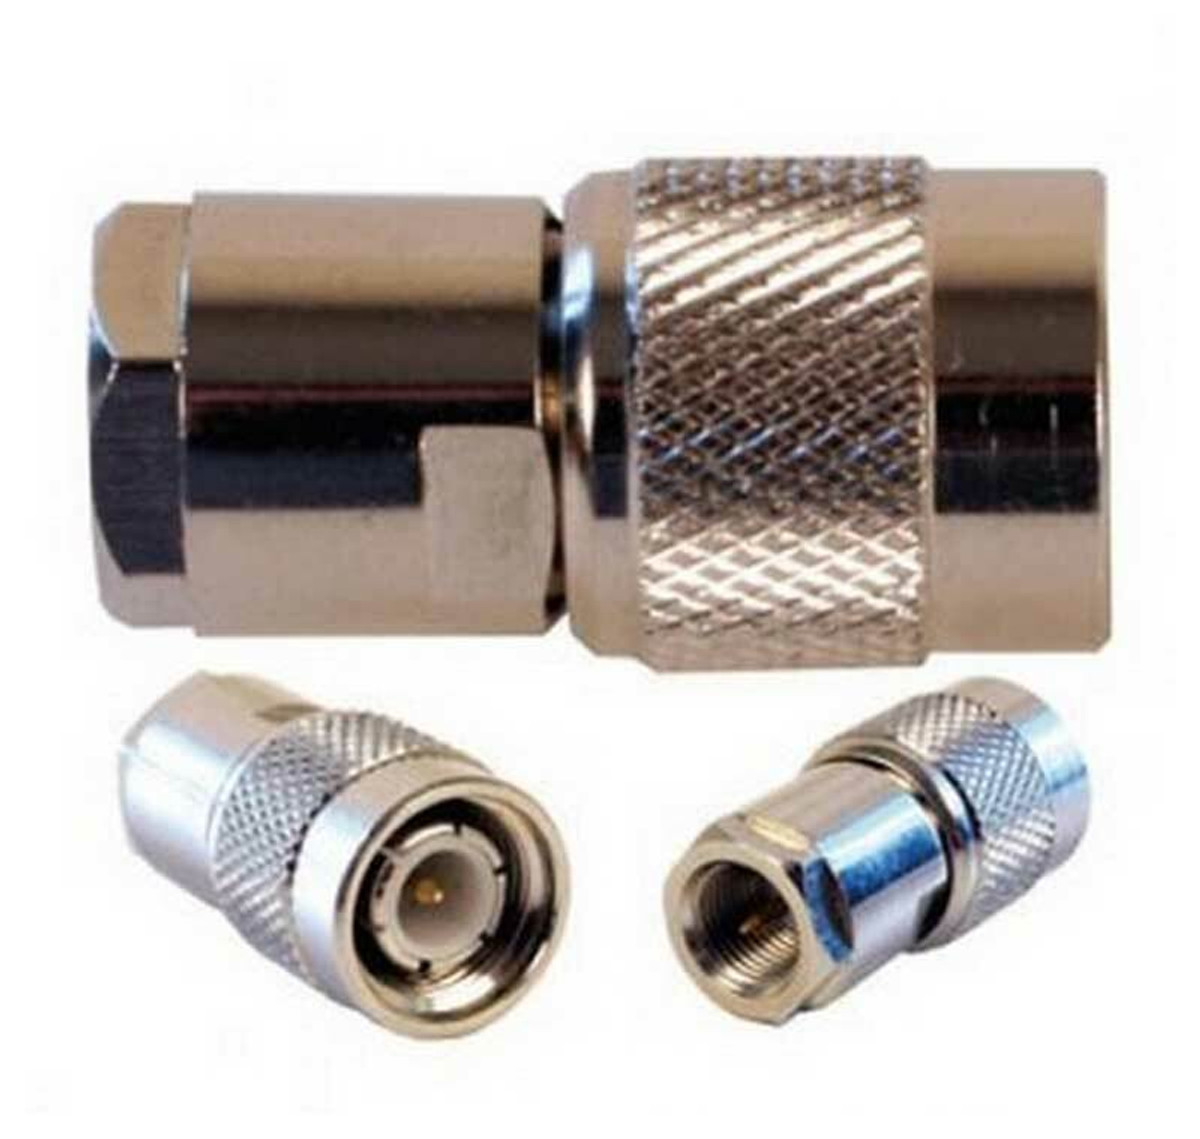 weBoost (Wilson) 971106 FME-Male to TNC-Male Connector